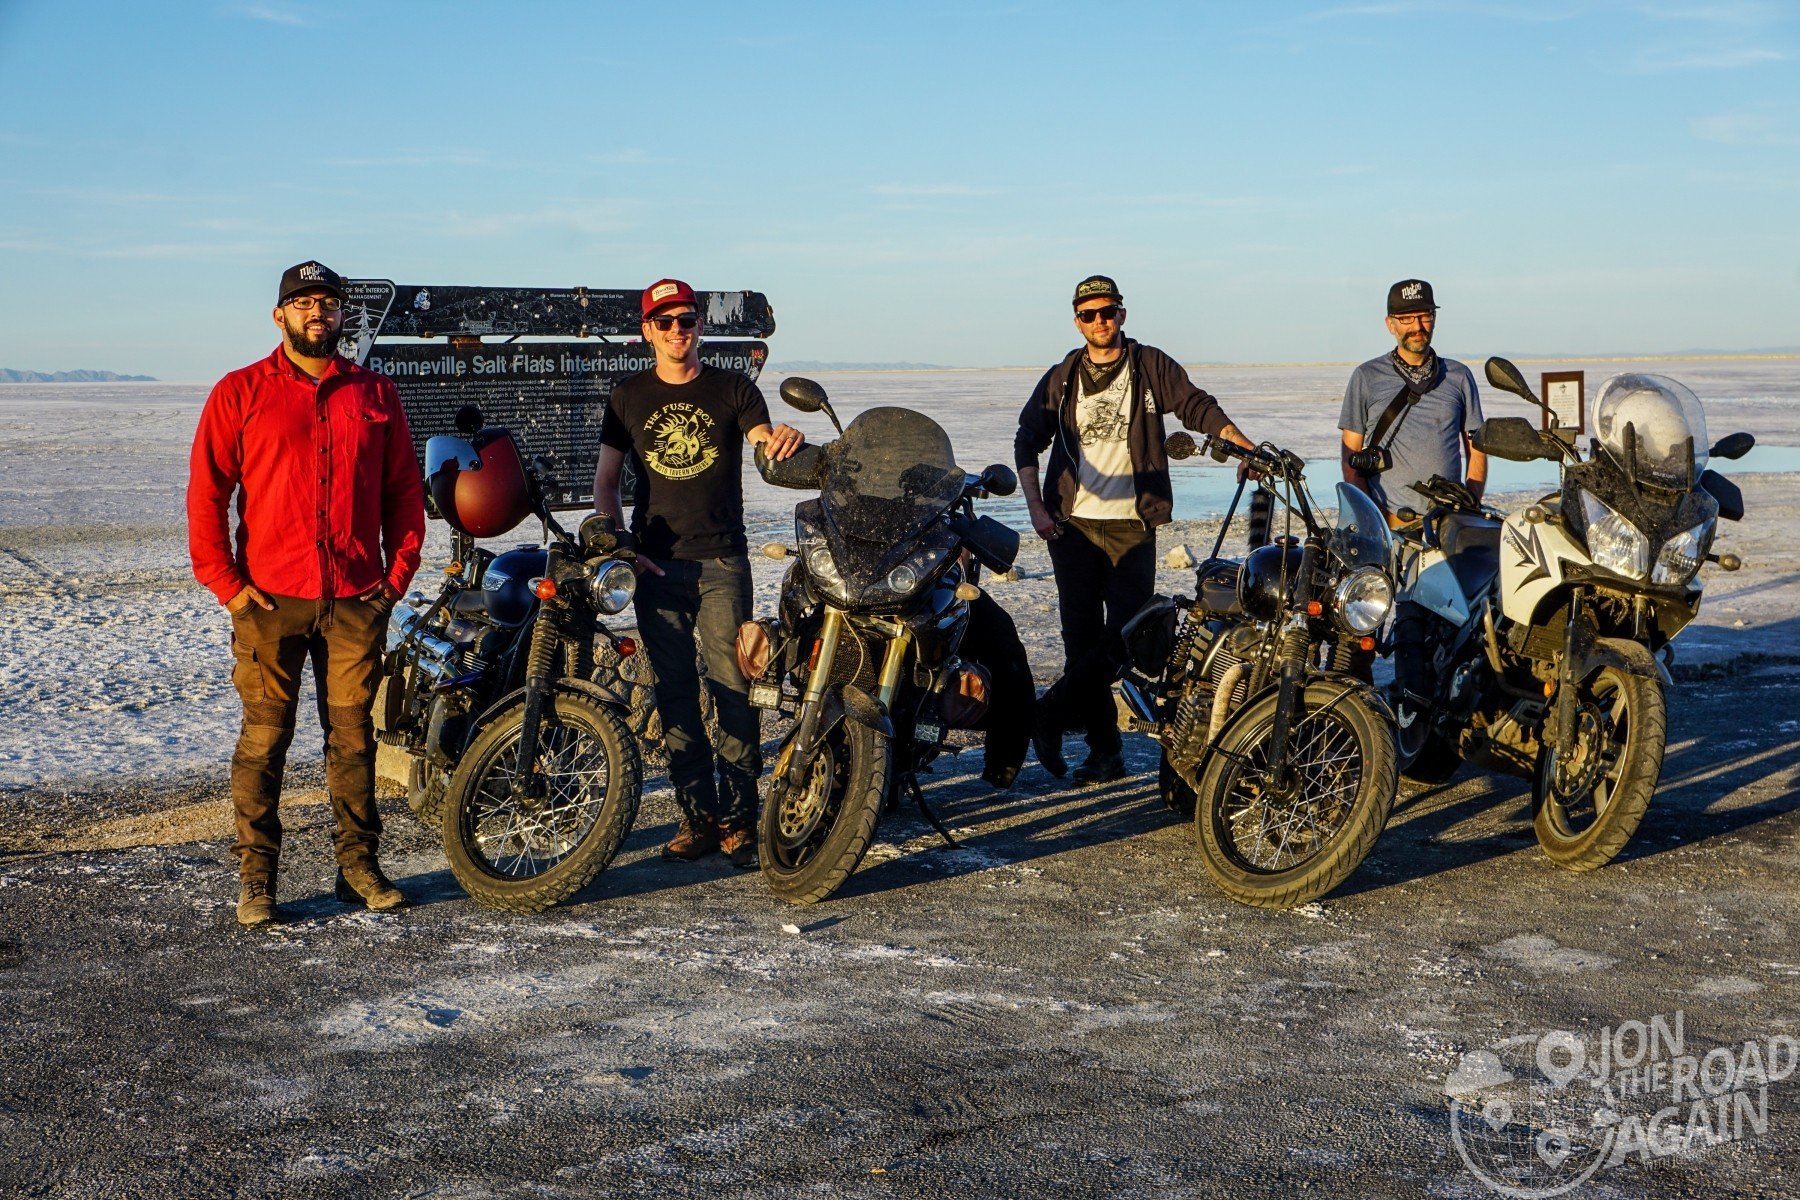 Fuse Box Riders at Bonneville Salt Flats